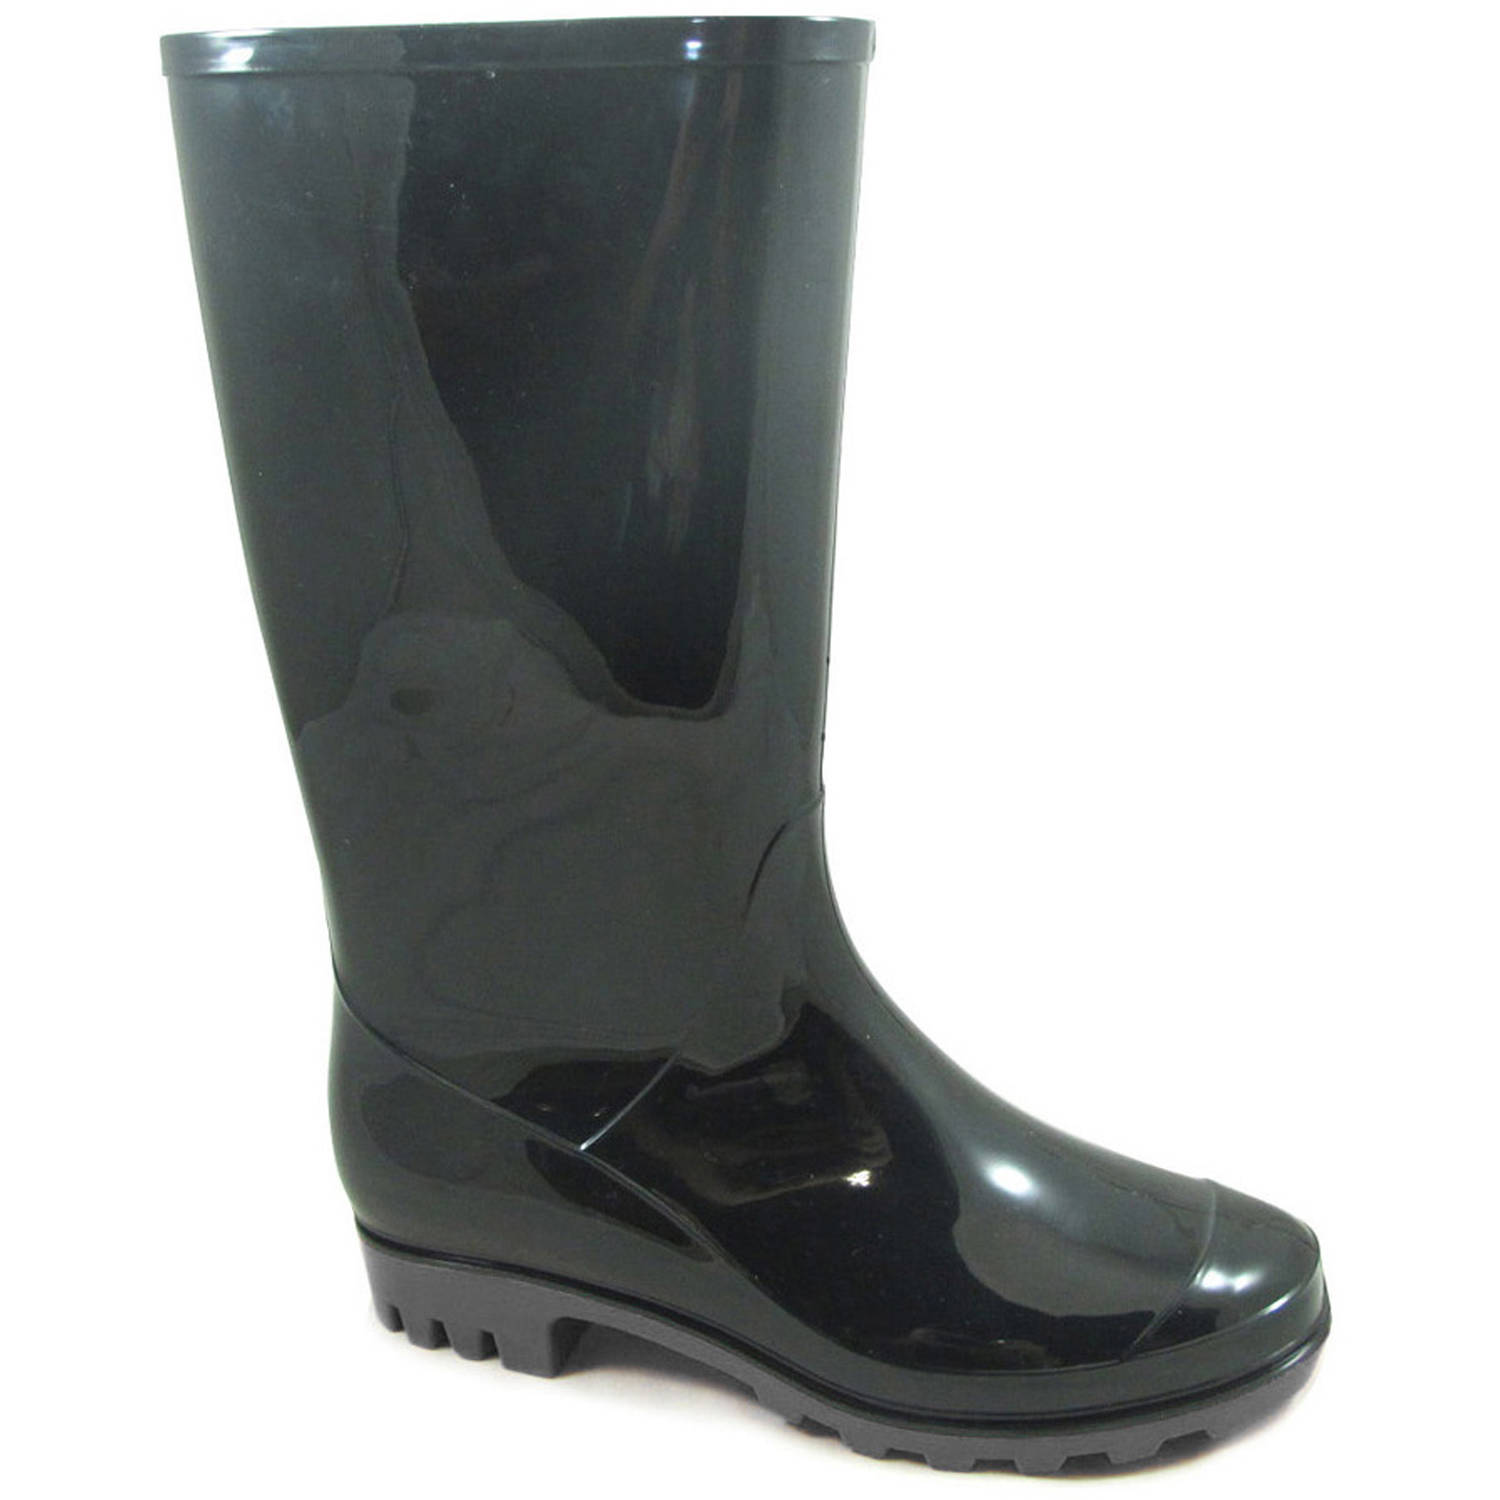 Womens Unbranded Solid Rainboot - Walmart.com